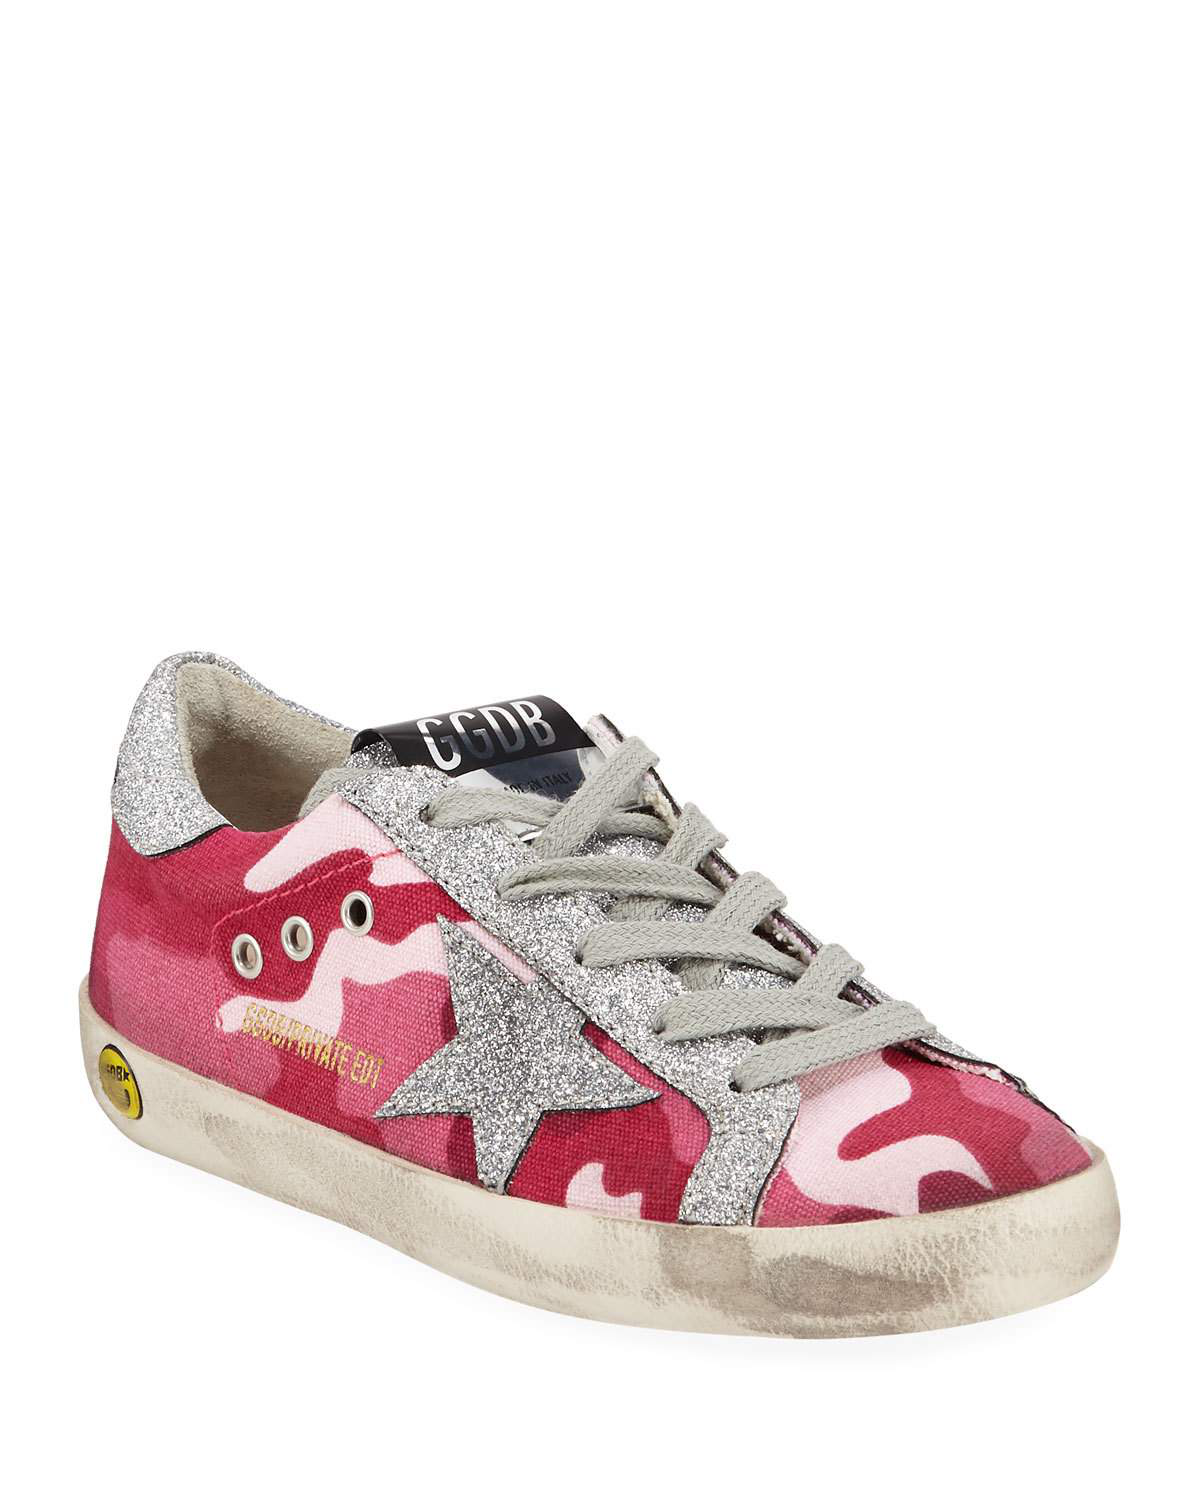 4e17858d4bfb3 Golden Goose Girls' Superstar Glittered Camo Low-Top Sneakers, Baby/Toddler  In